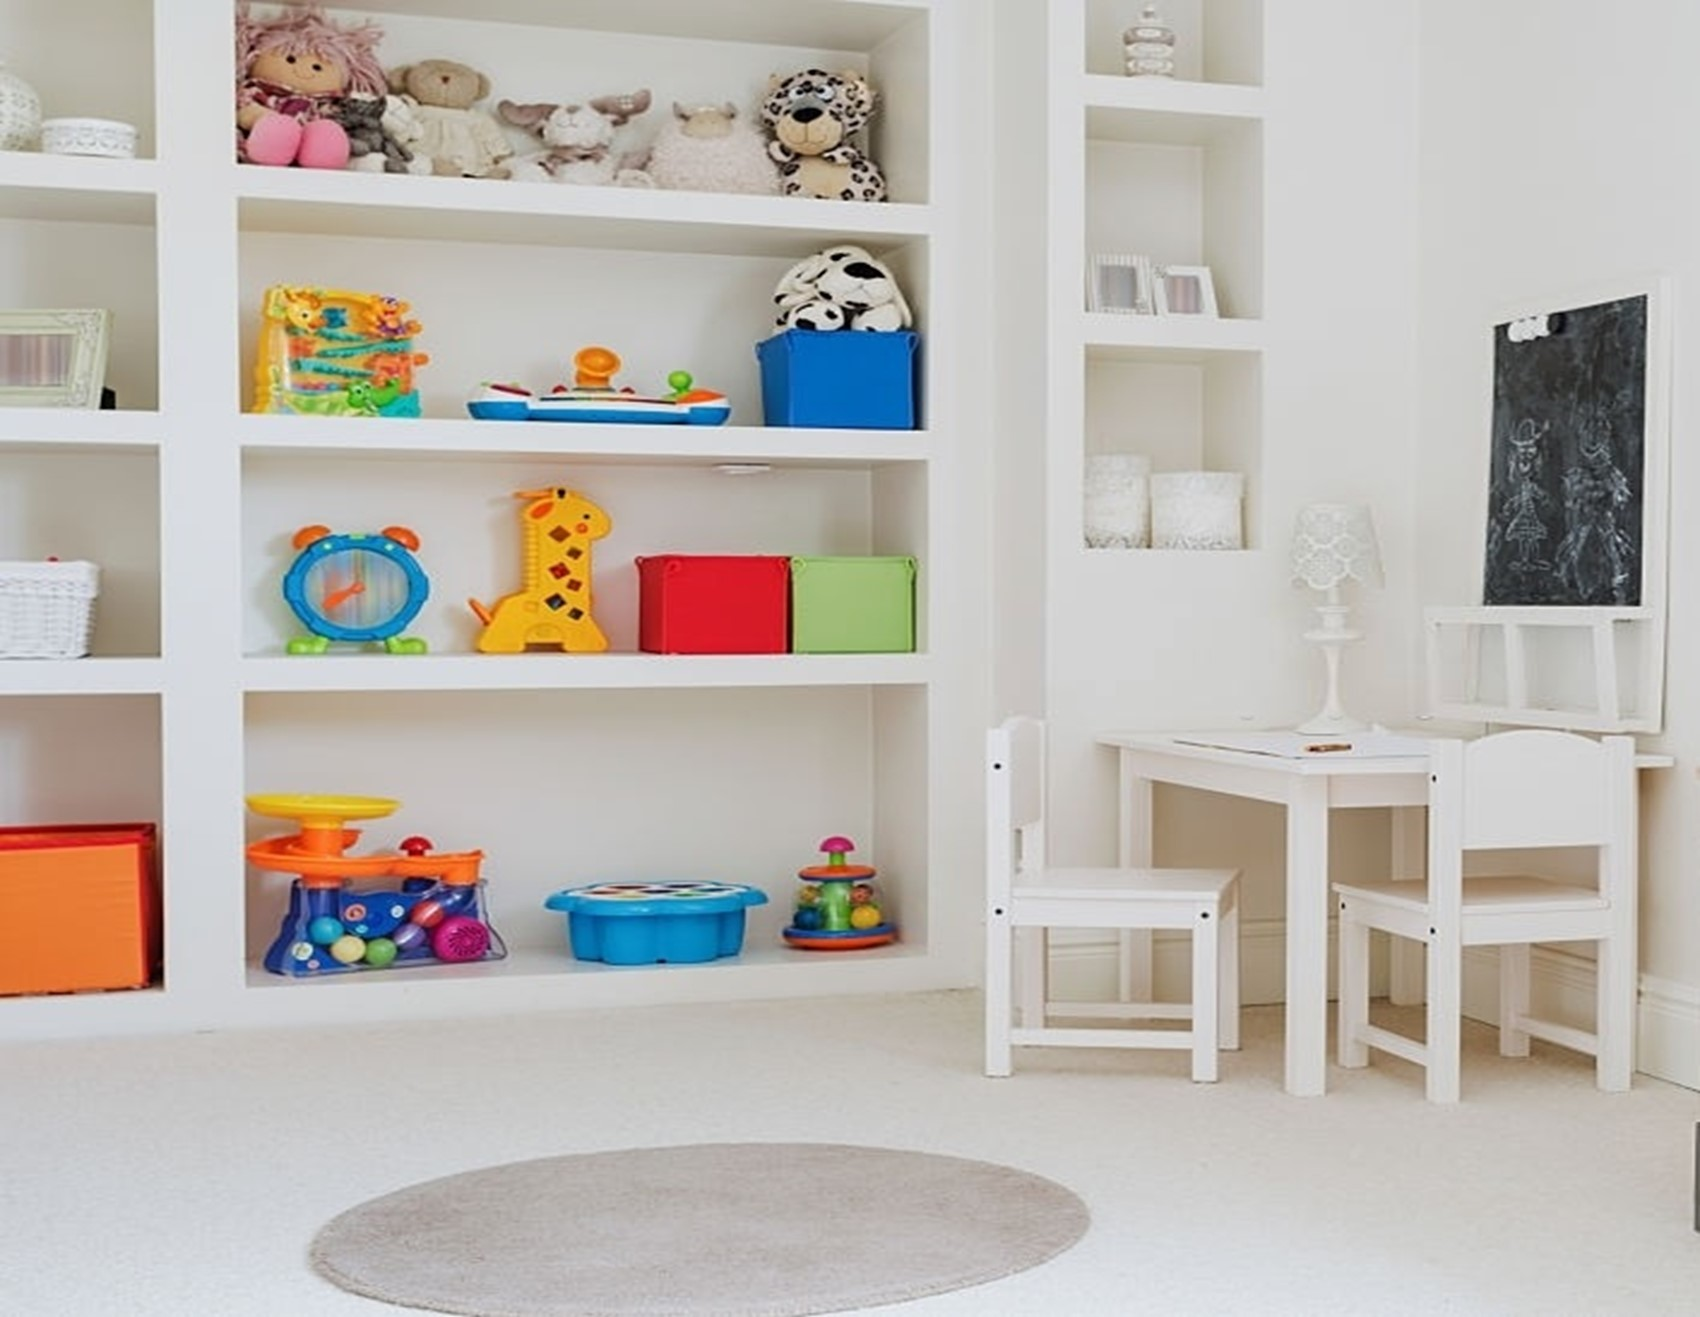 Decorating Your Kid's Room on A Budget